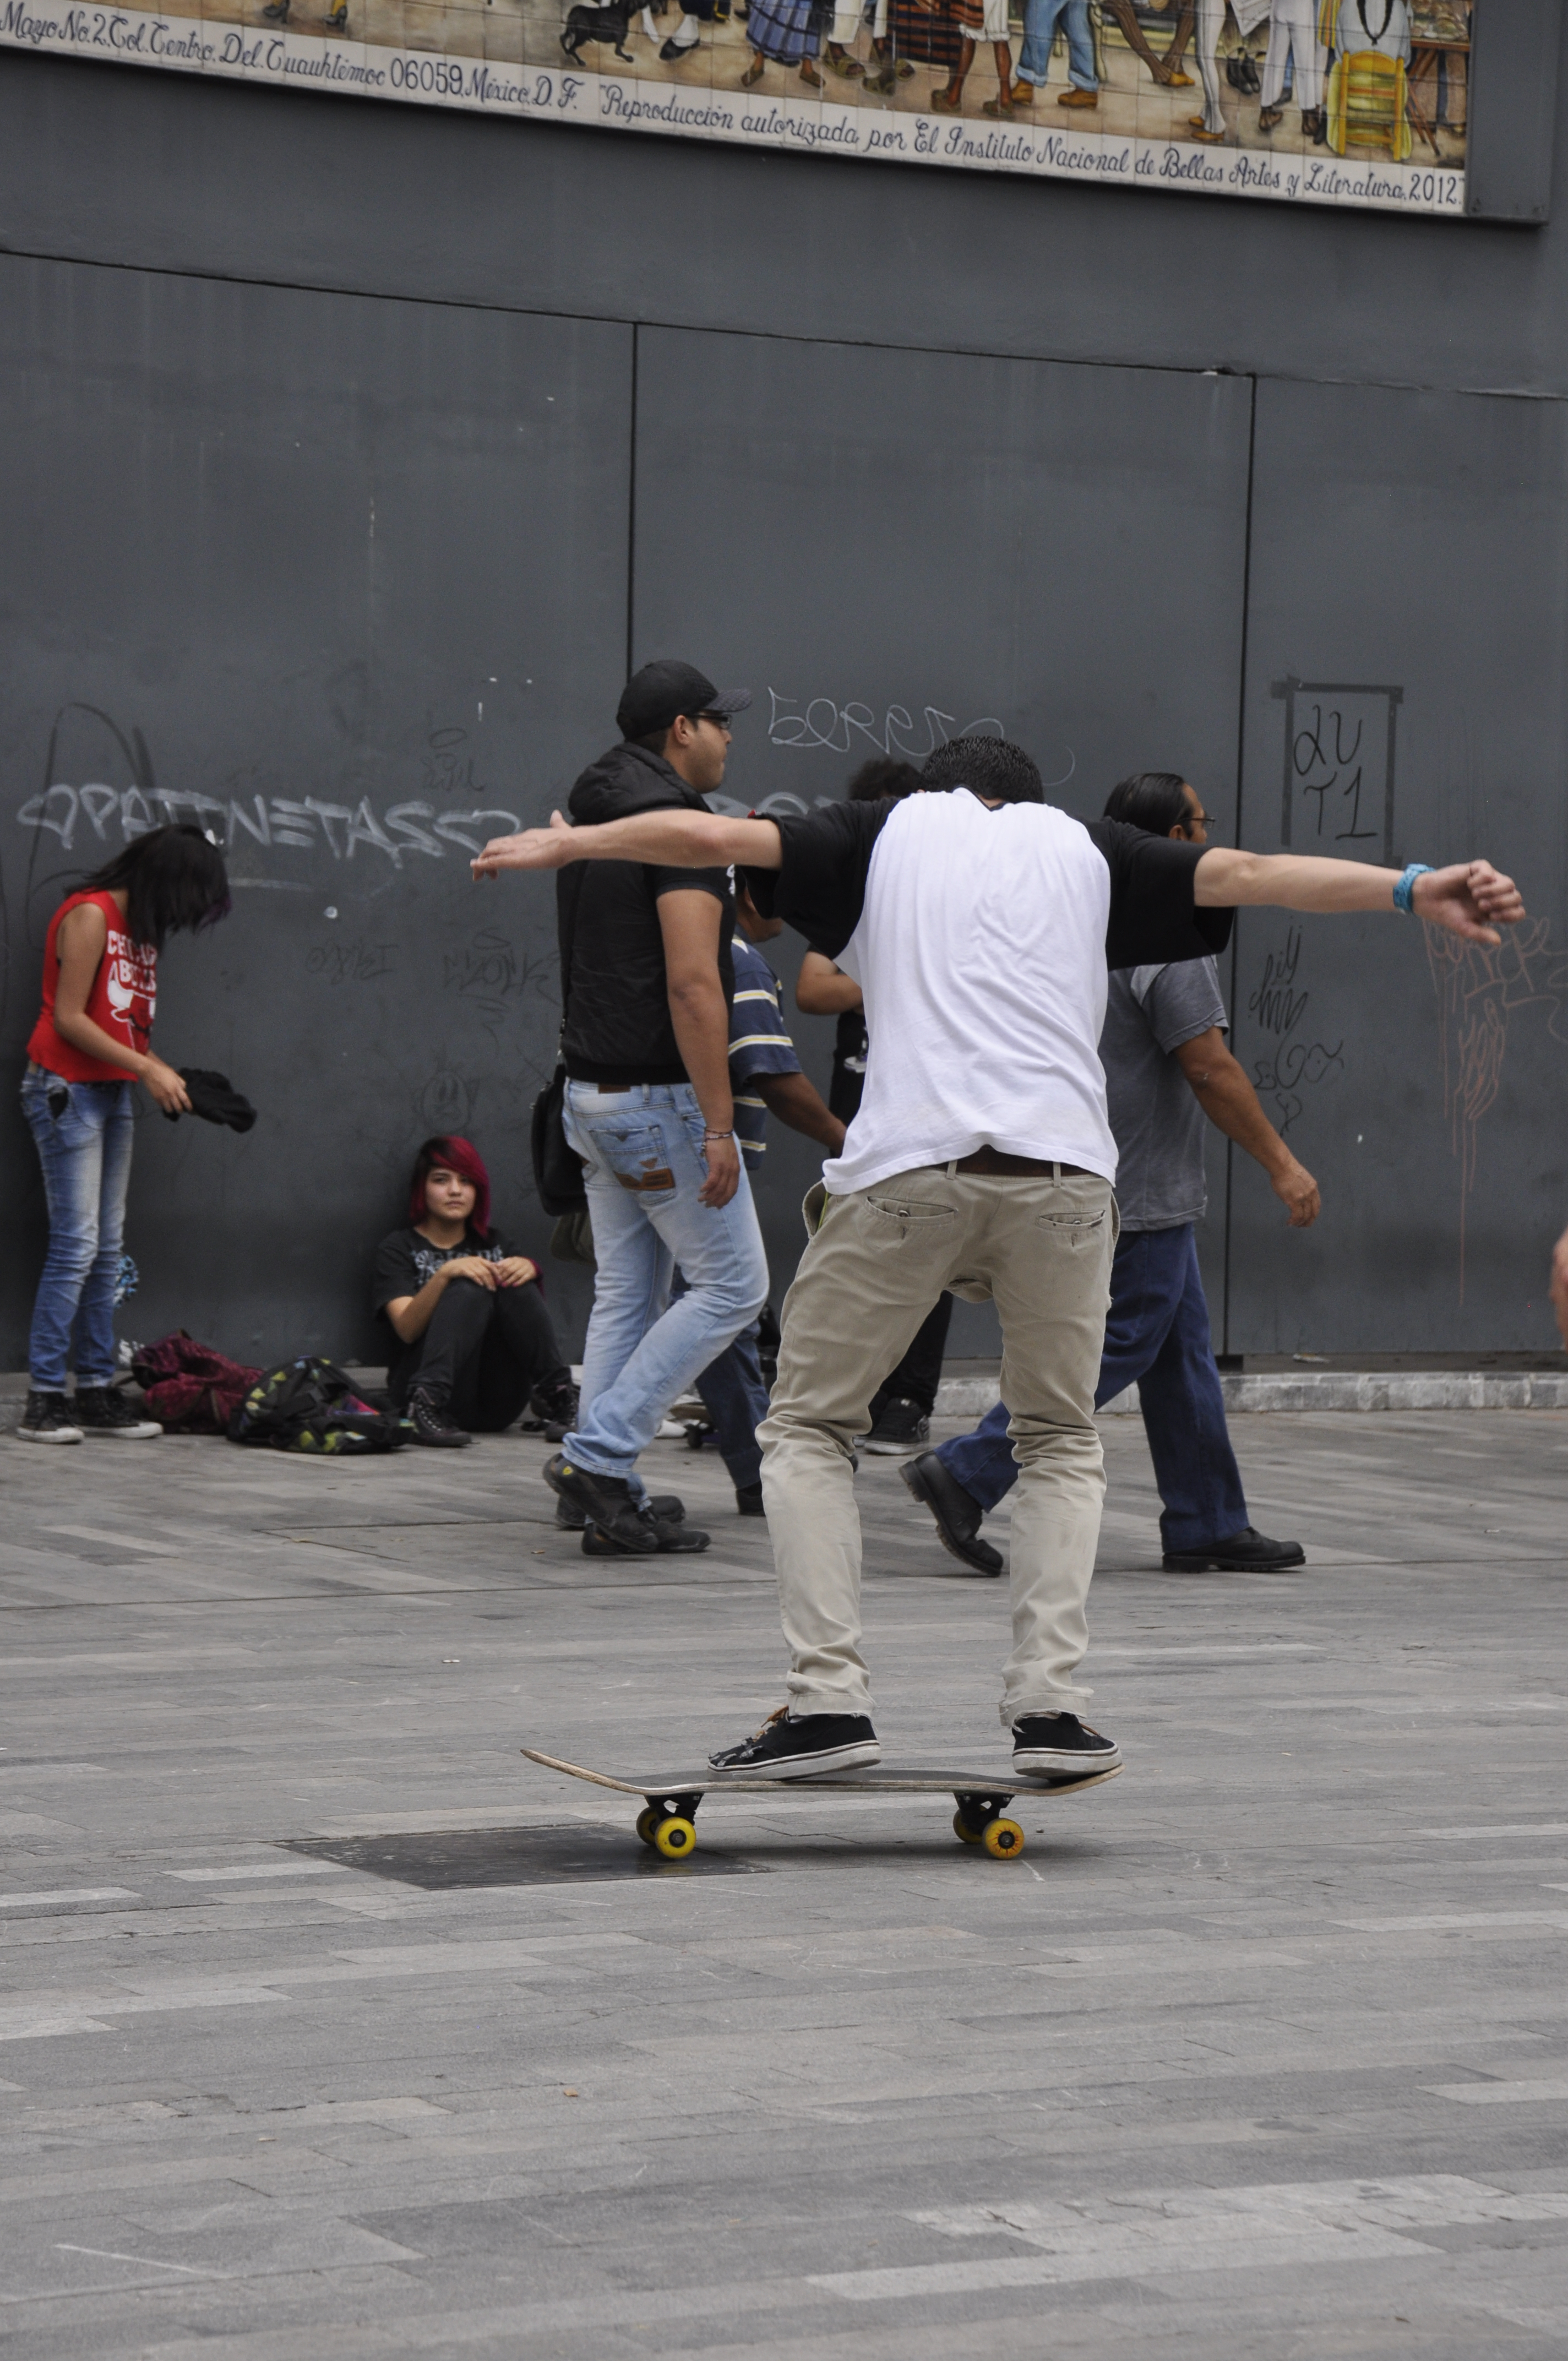 1f69c4681 File Skateboarding at Mexico City - Flip - 123.JPG - Wikimedia Commons